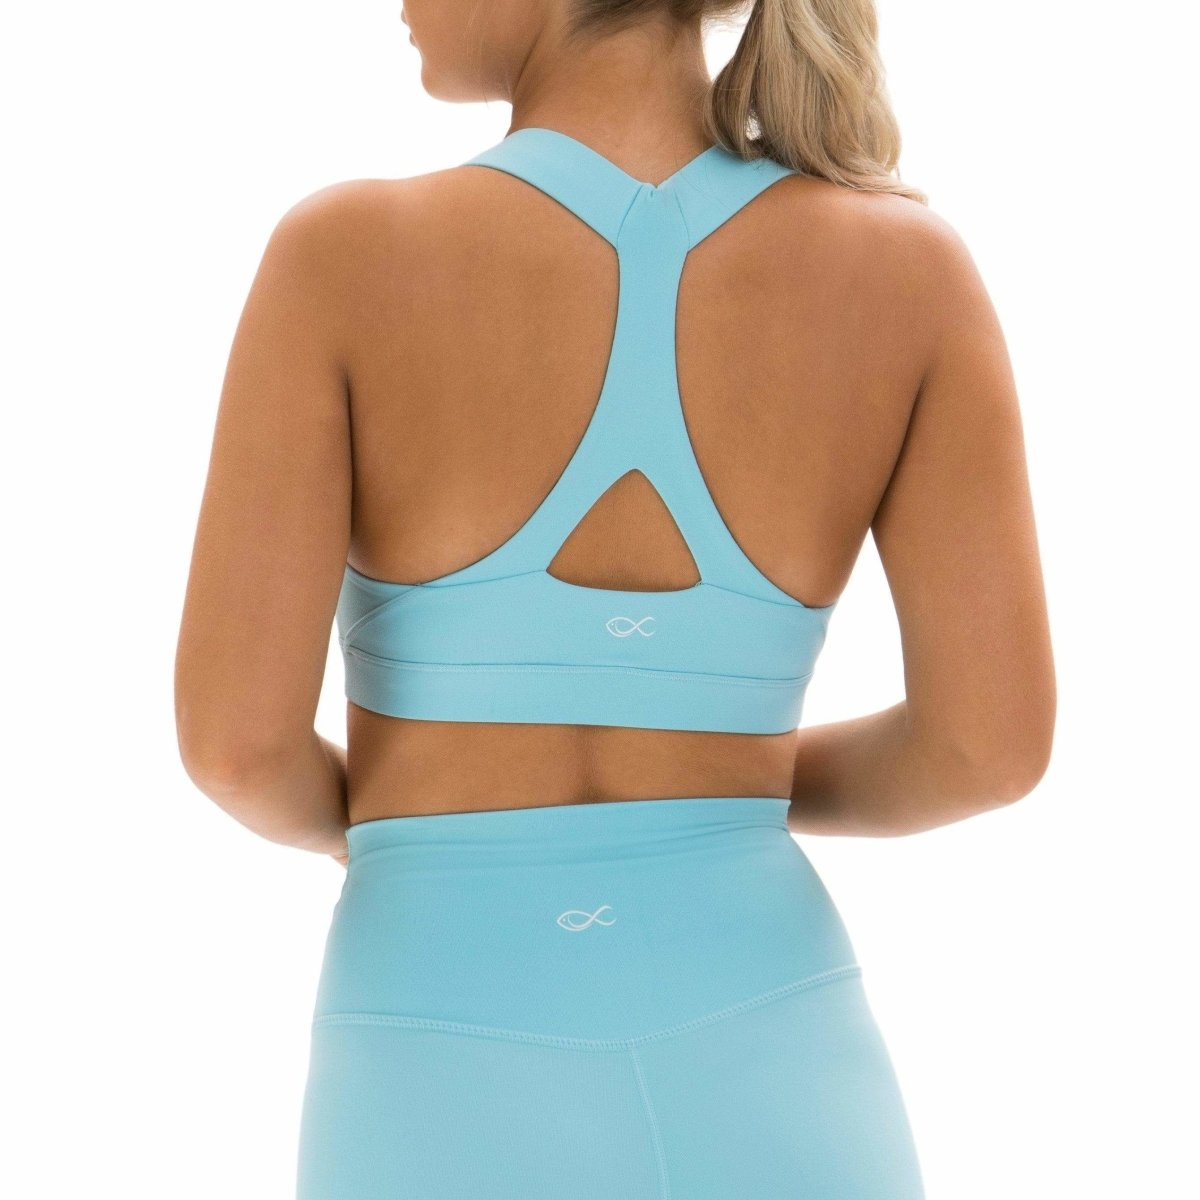 Y-Not Bra in Blue Topaz - Southern Athletica